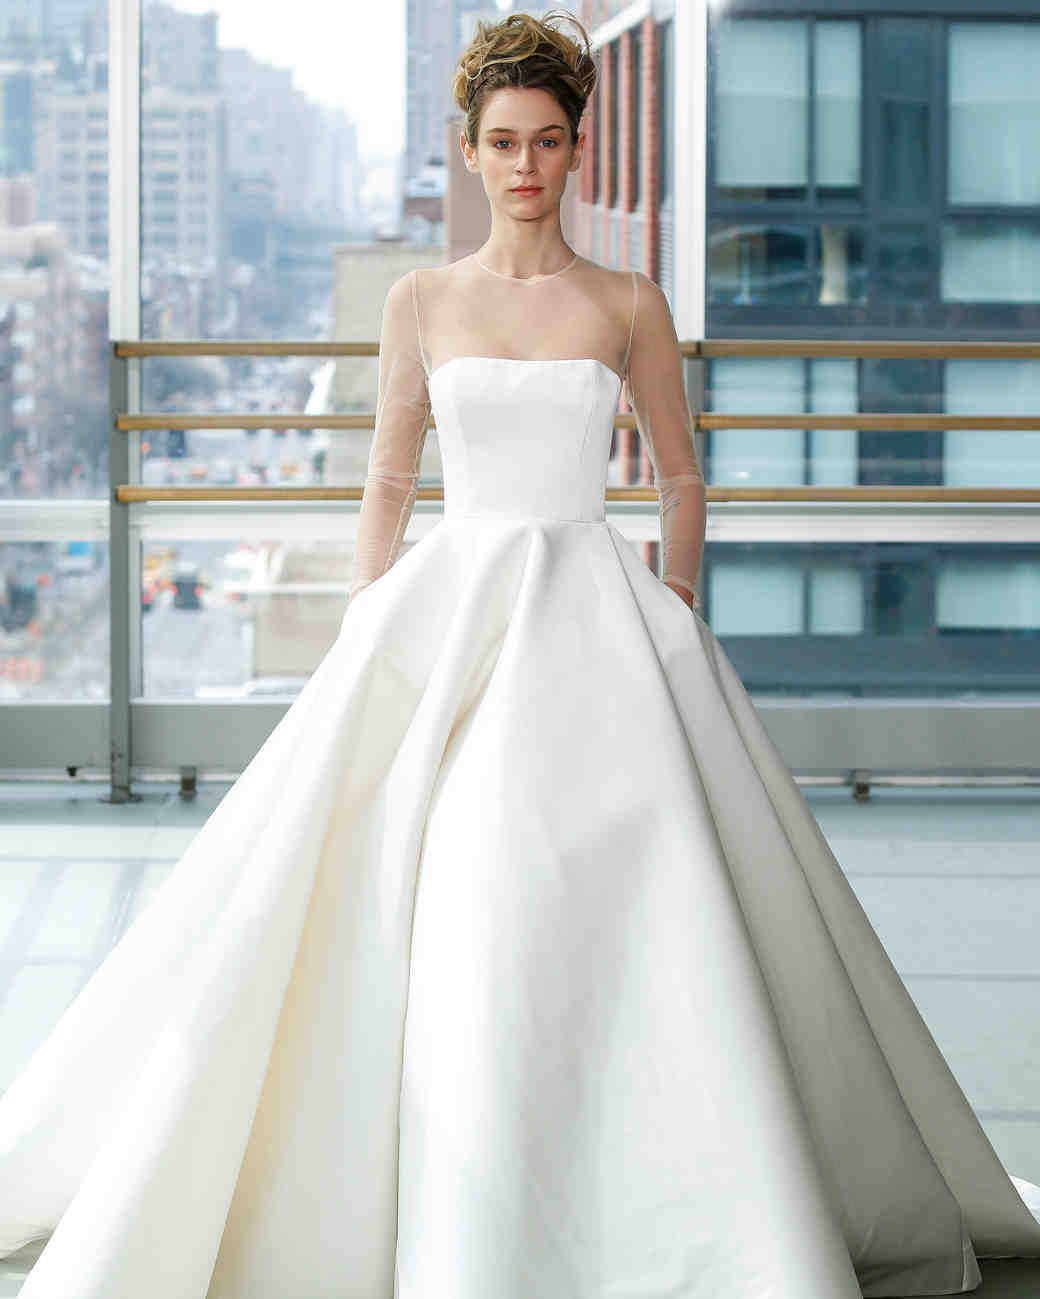 gracy accad wedding dress spring 2019 ball gown illusion long sleeves